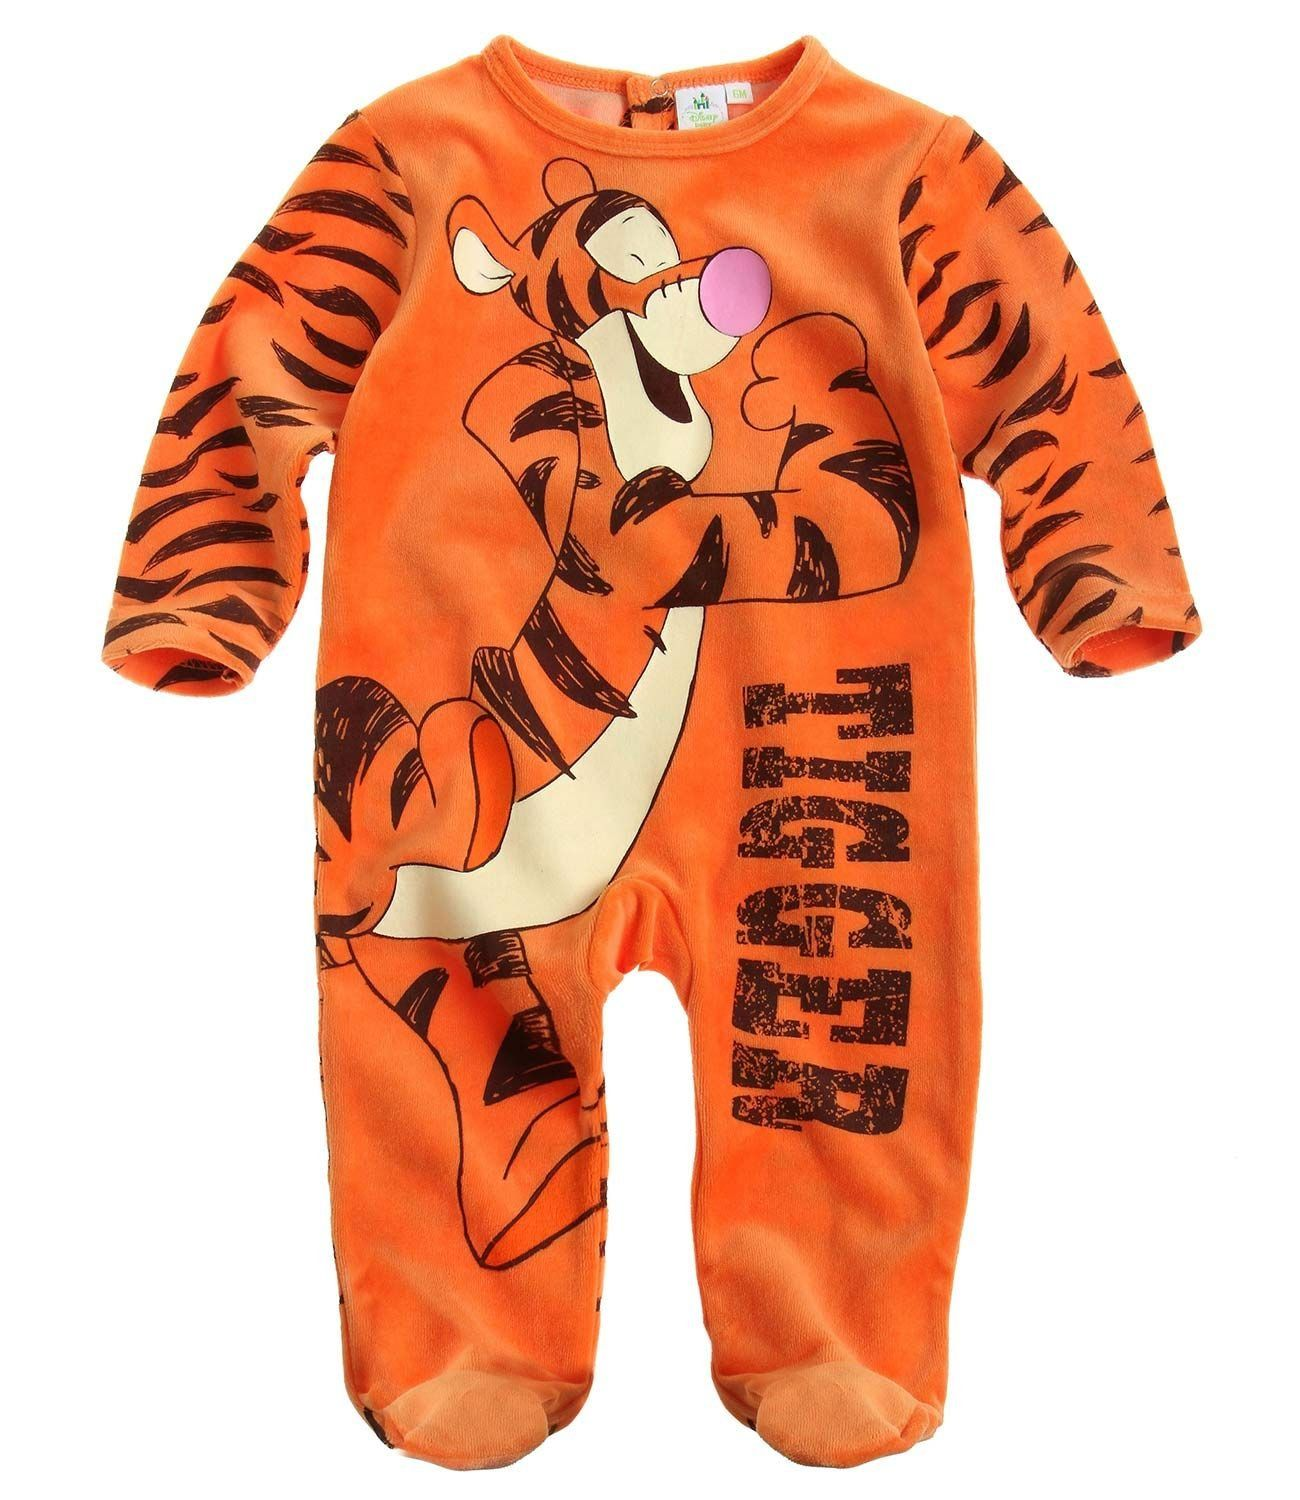 f7c8111f331f Disney Tigger Baby overall orange  Amazon.co.uk  Clothing